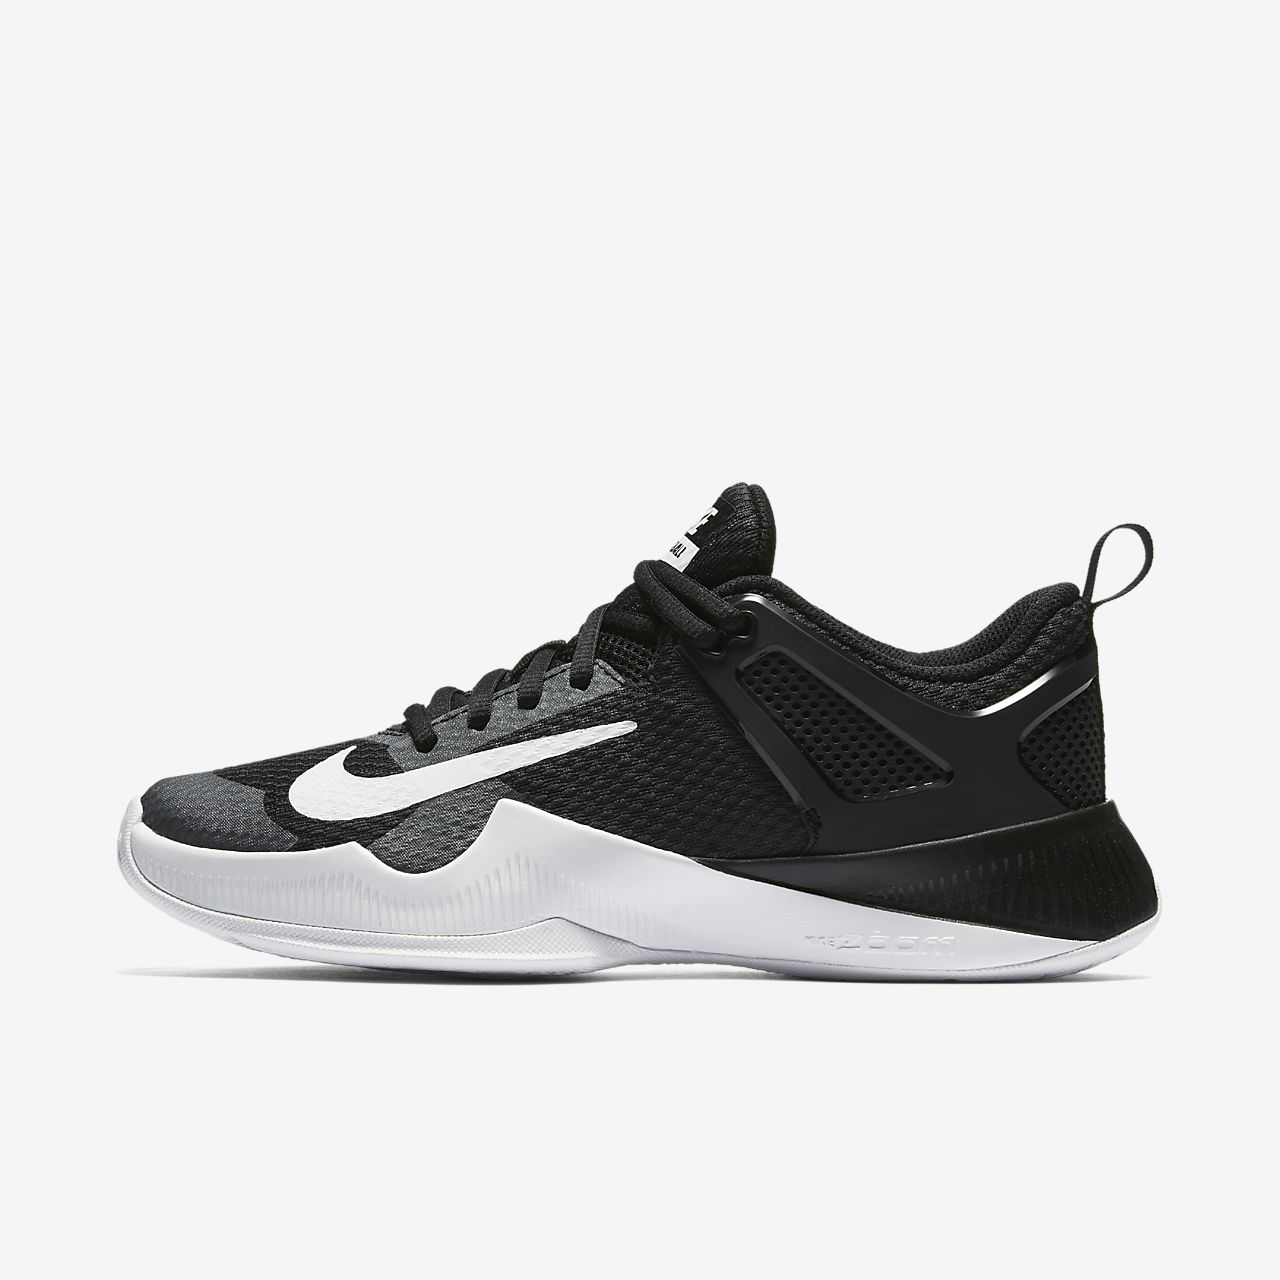 men s nike shoes size 9-5 macrumors buying guide 856367